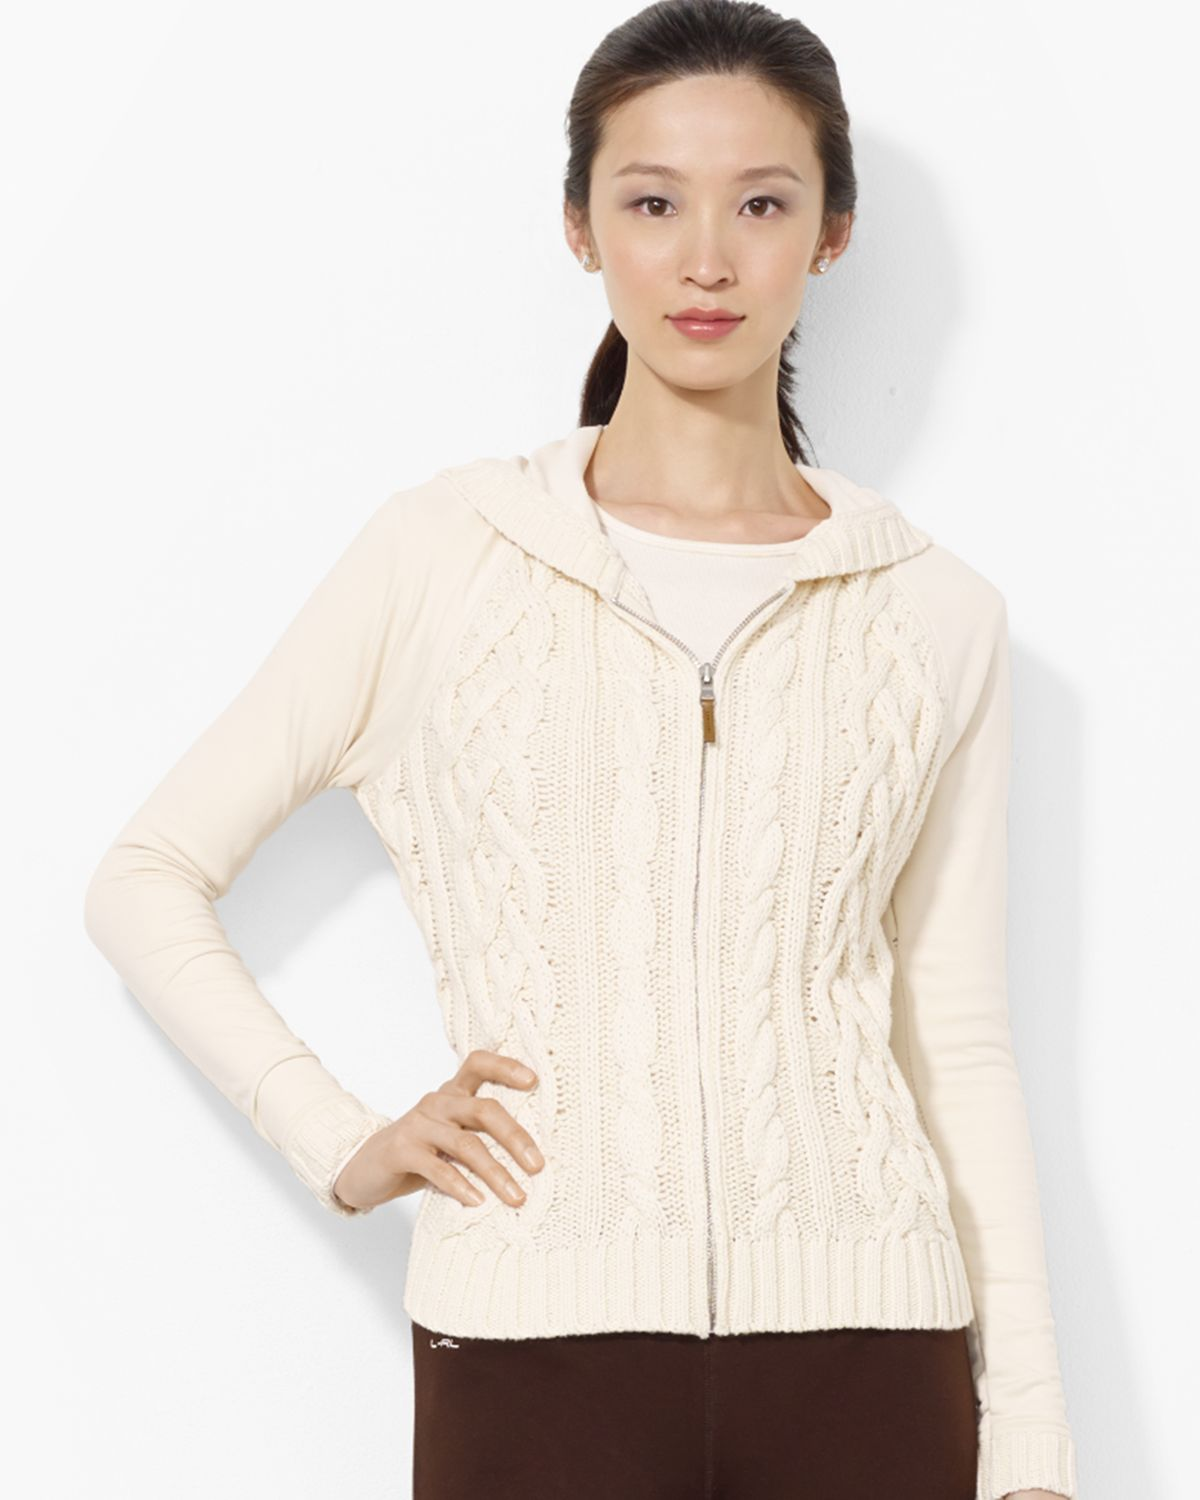 Ralph Lauren Black Label Cashmere Pullover (€520) liked on